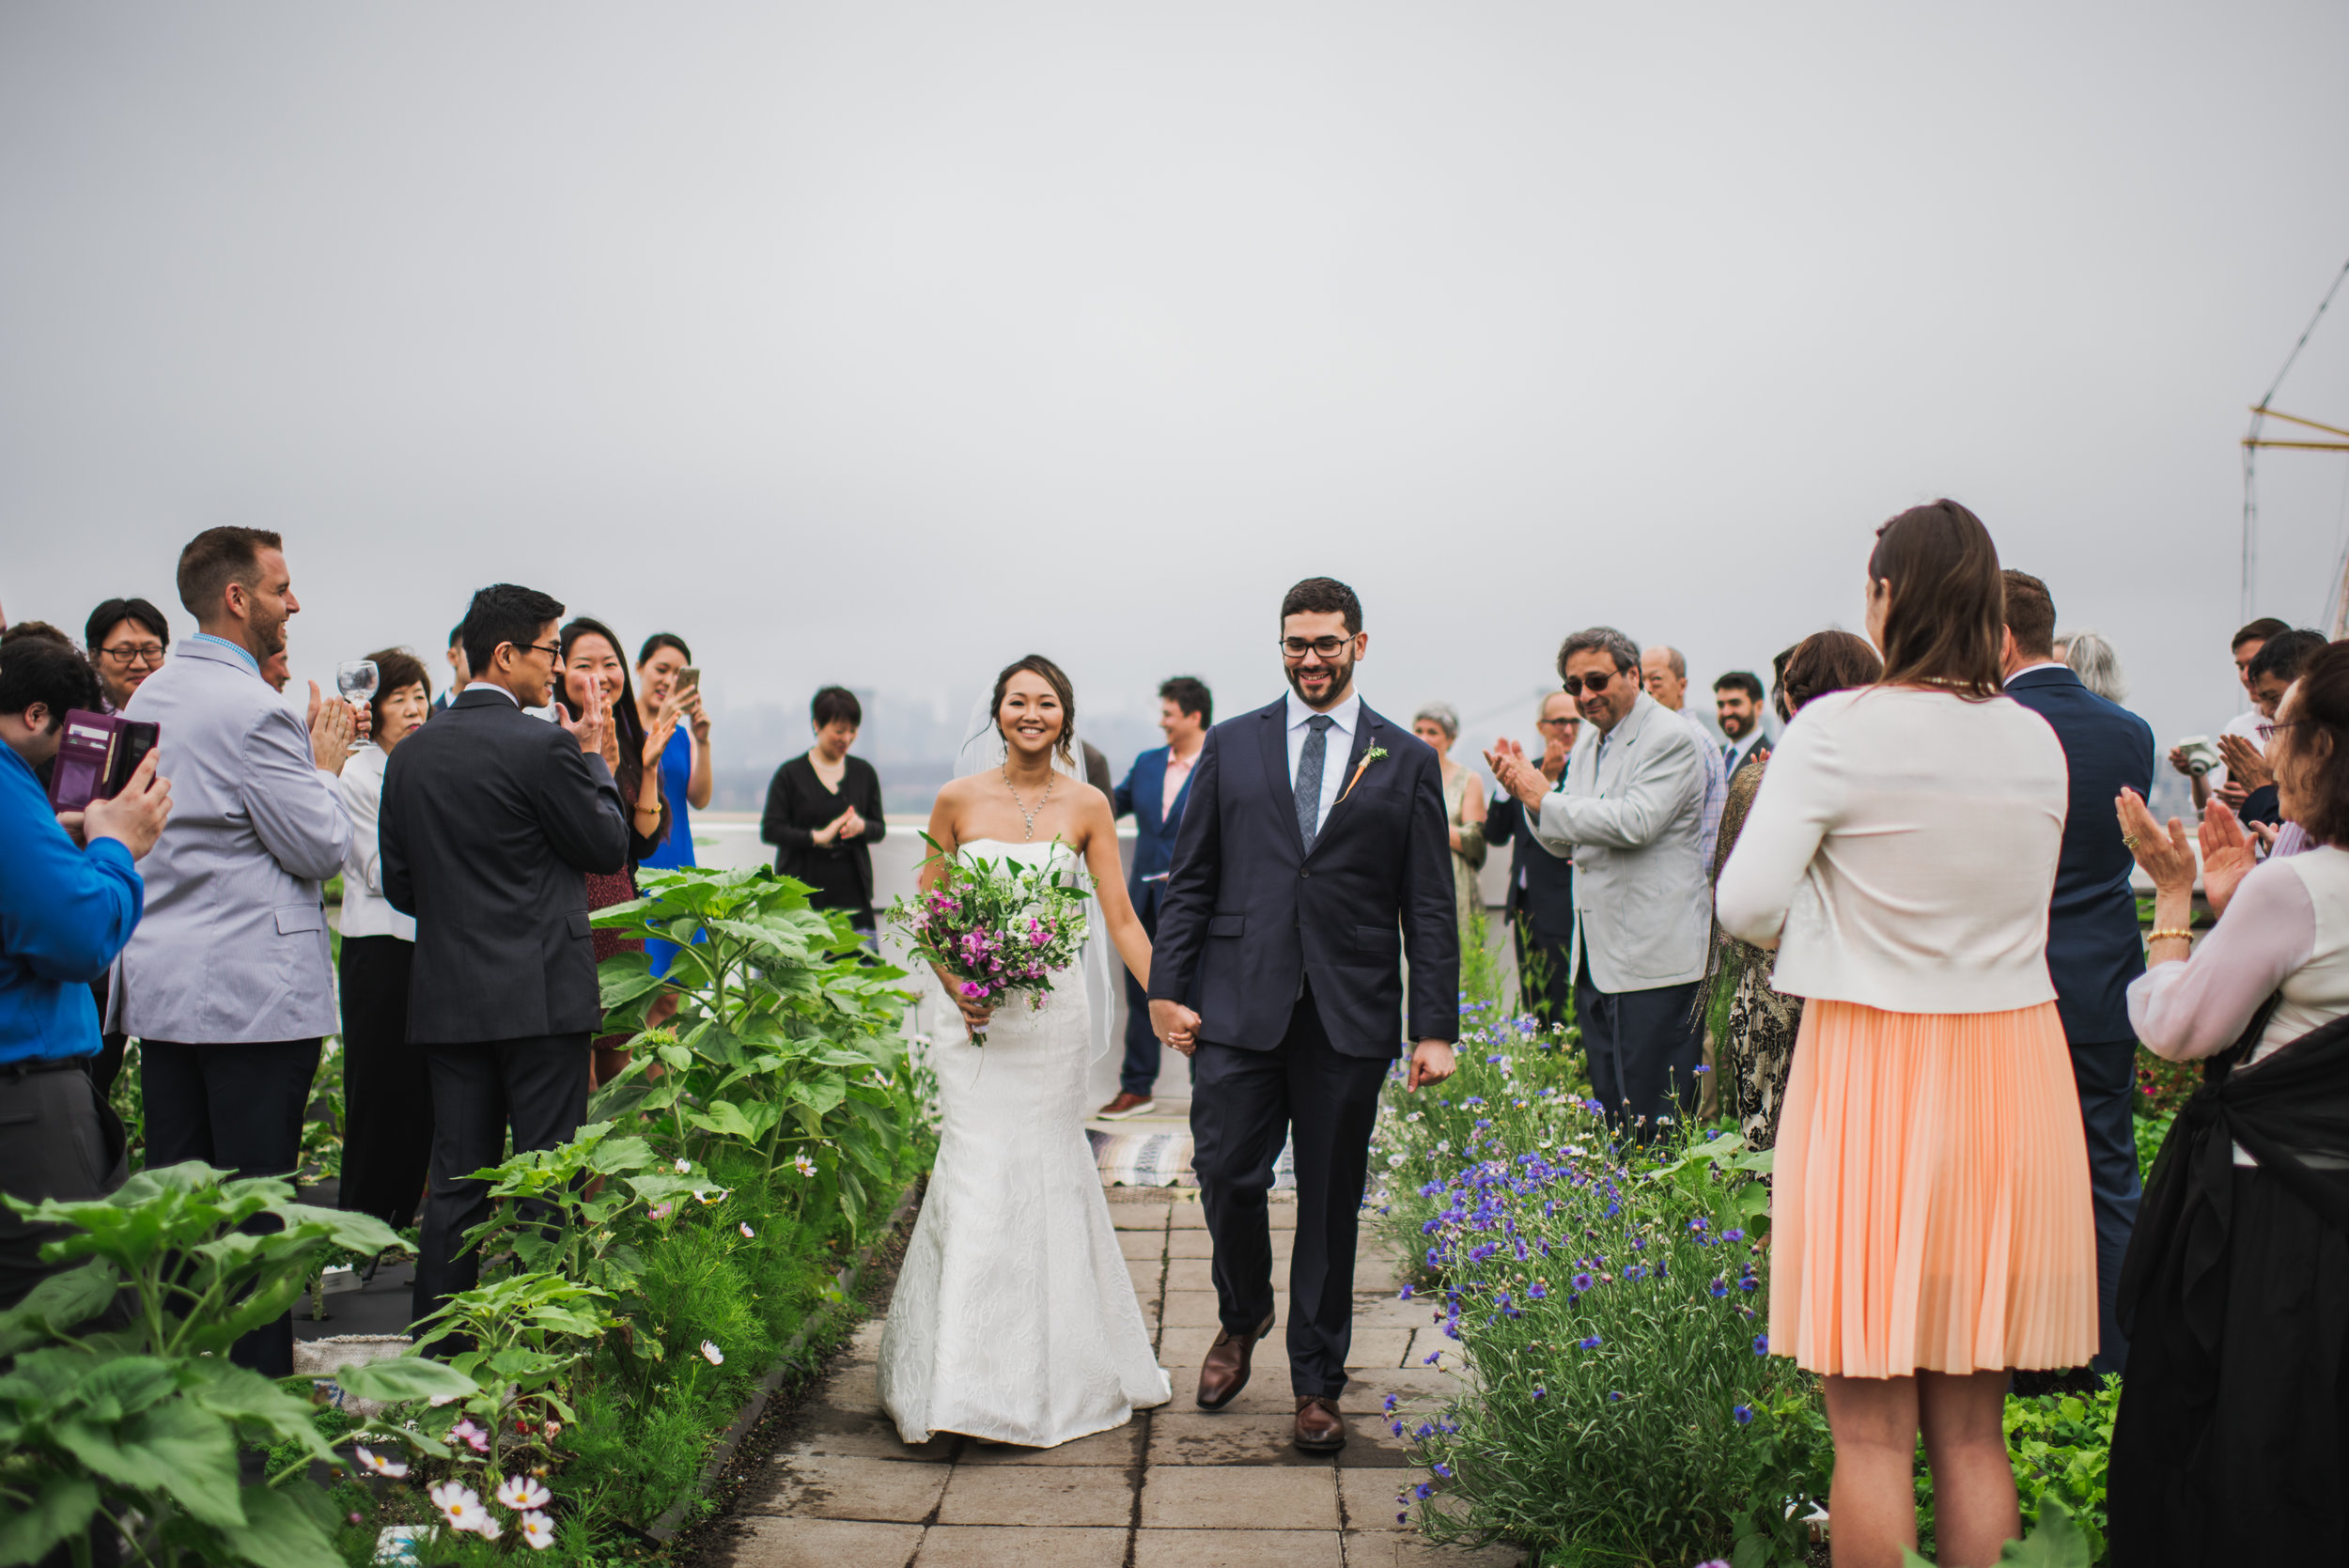 BROOKLYN GRANGE WEDDING - LILY & ANDREW - NYC BEST INTIMATE WEDDING PHOTOGRAPHER - CHI-CHI ARI-316.jpg